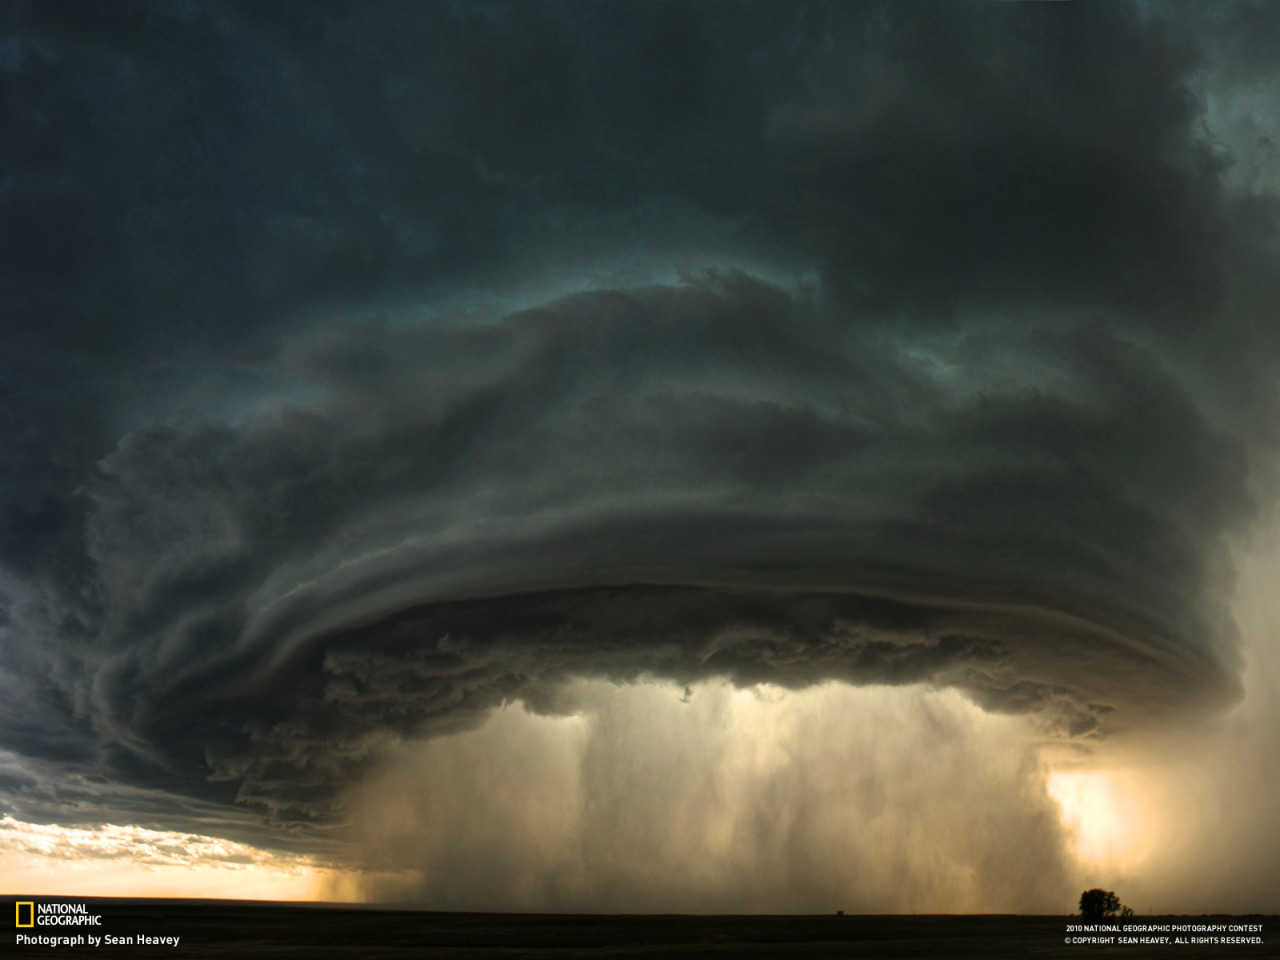 littlelimpstiff14u2:  A supercell thunderstorm rolls across the Montana prairie at sunsetCredit by Sean Heavey